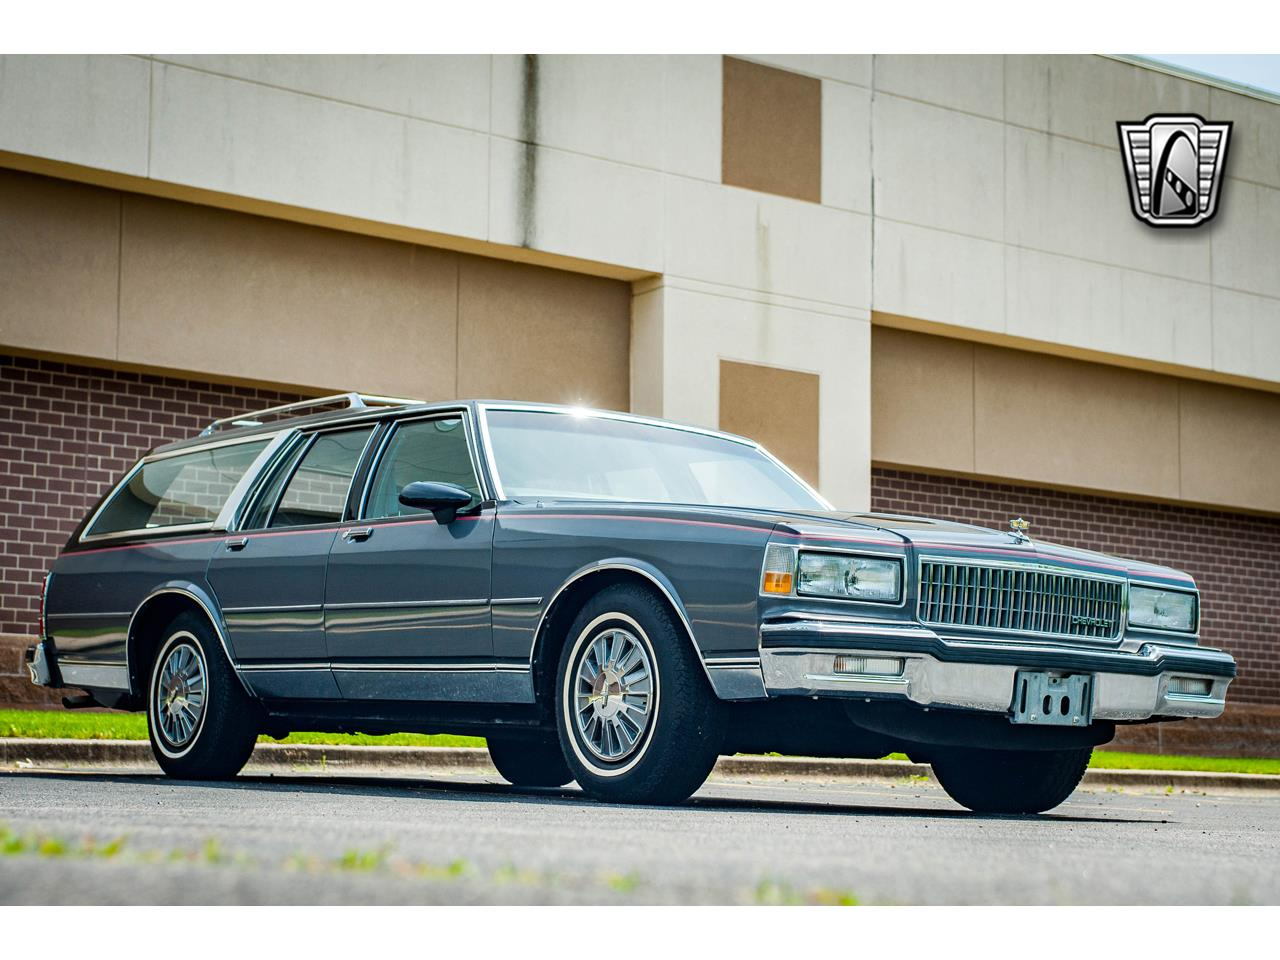 Large Picture of '89 Chevrolet Caprice located in O'Fallon Illinois - QB9K